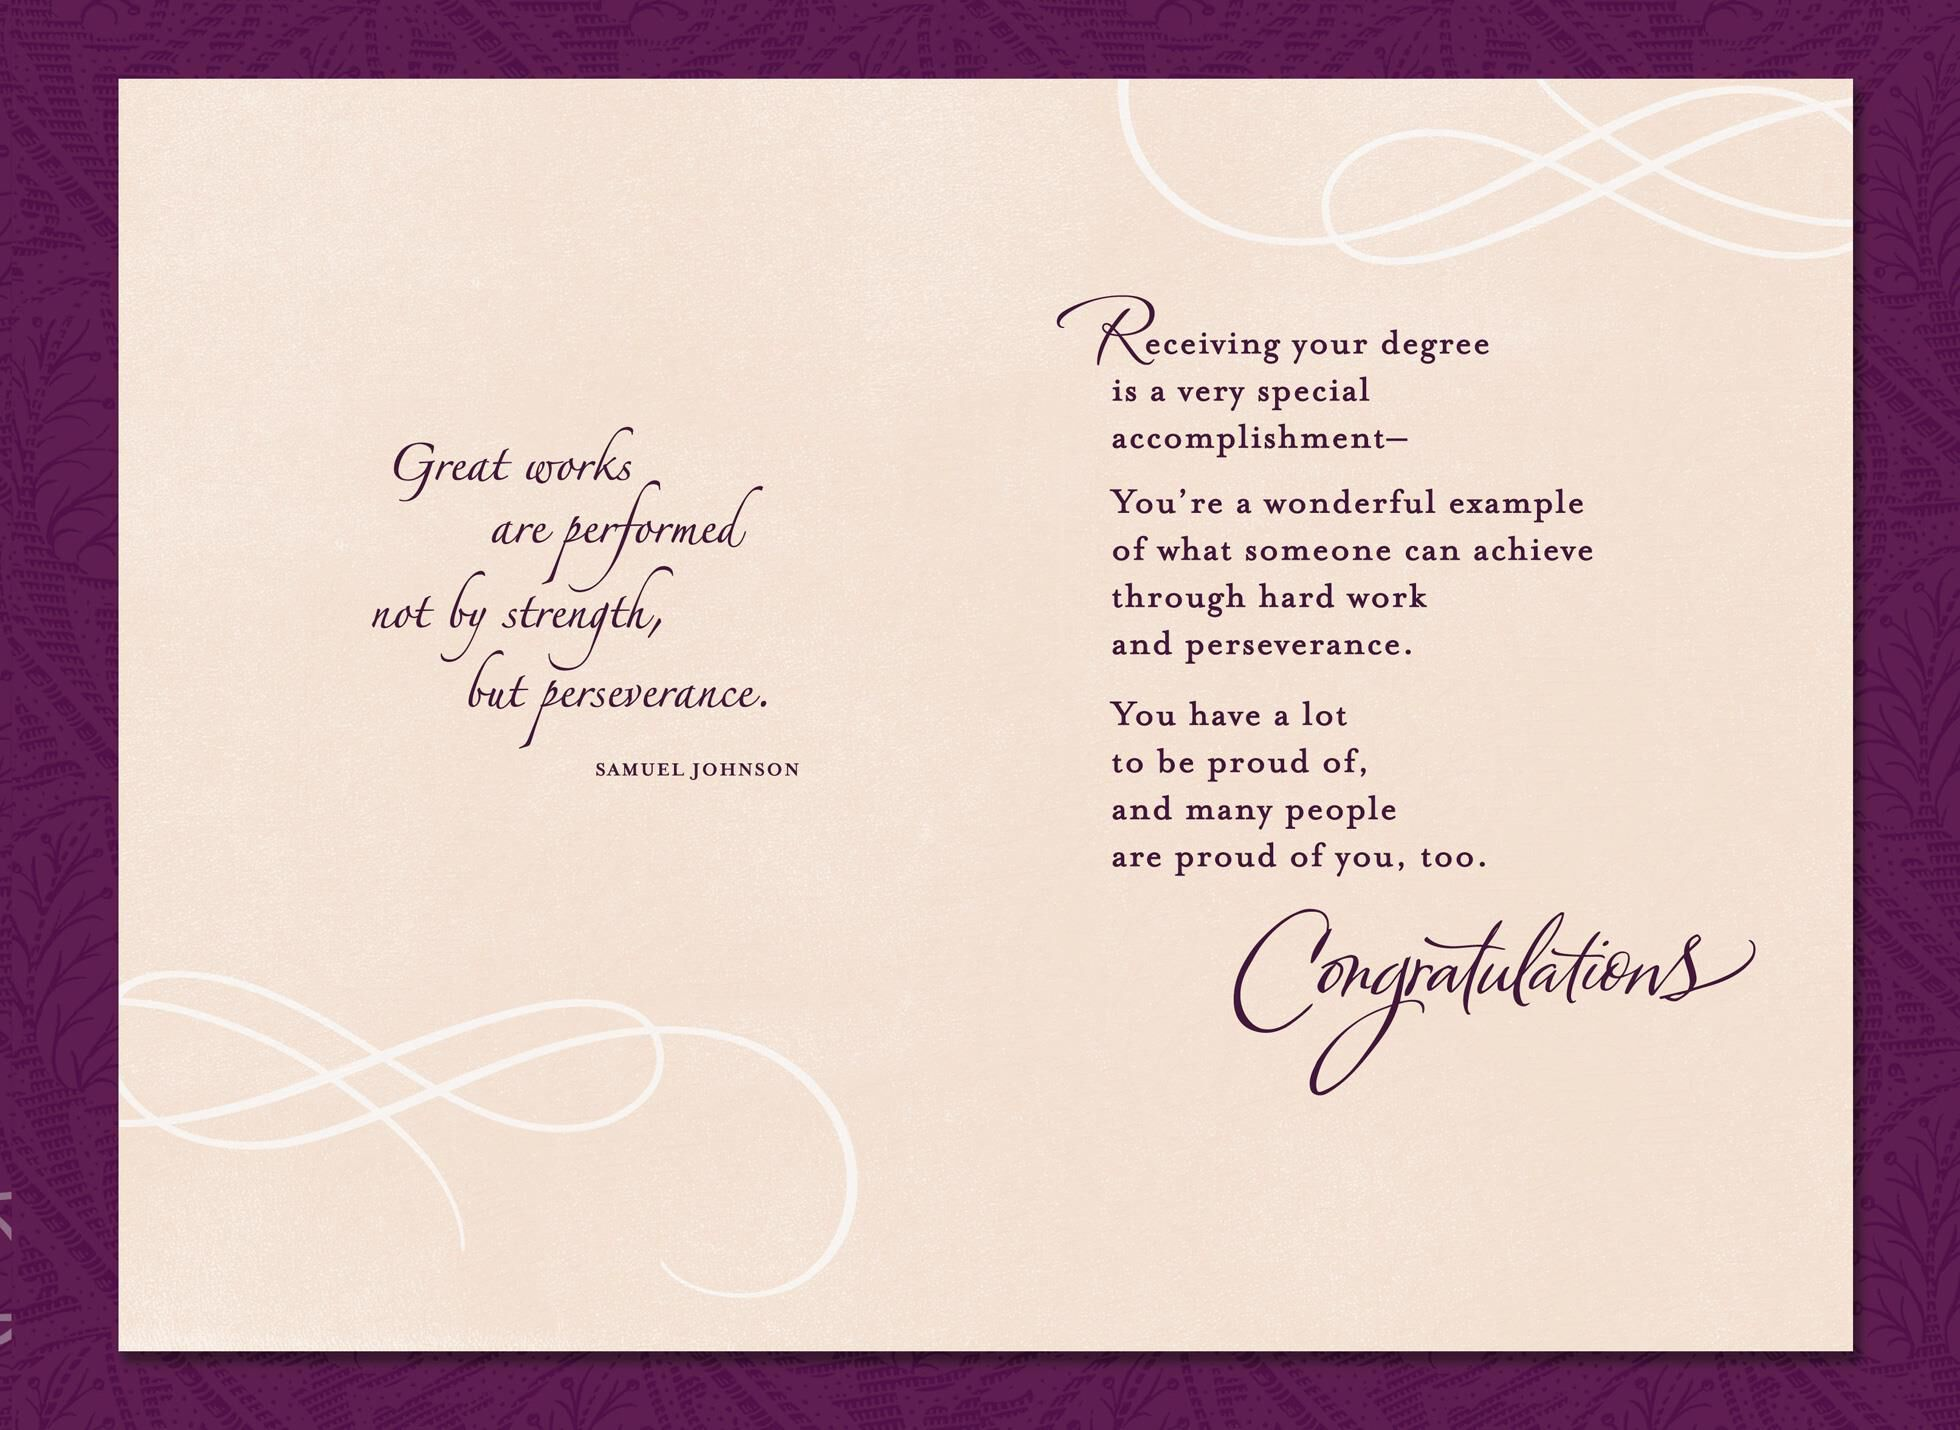 congratulation on your graduation cards congratulations on your degree graduation card